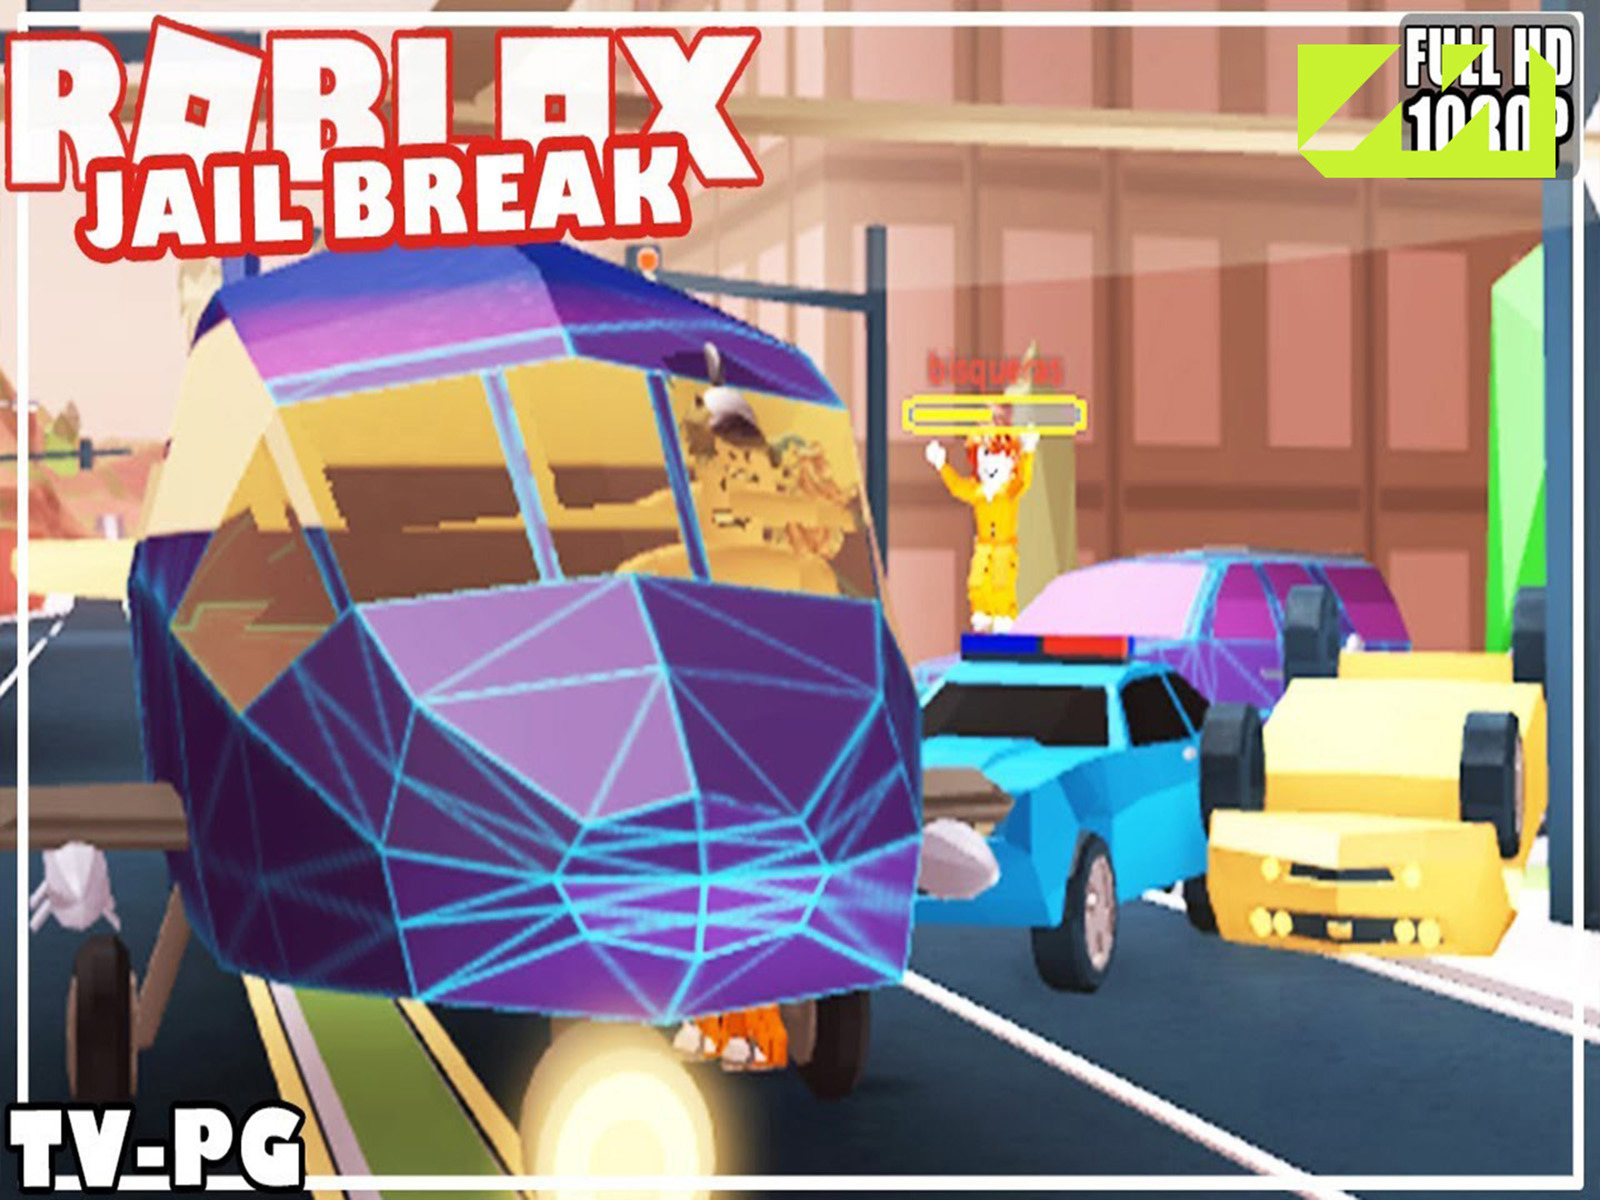 Amazoncom Watch Clip Roblox Jailbreak Prime Video Prime Video Clip Roblox Jailbreak World